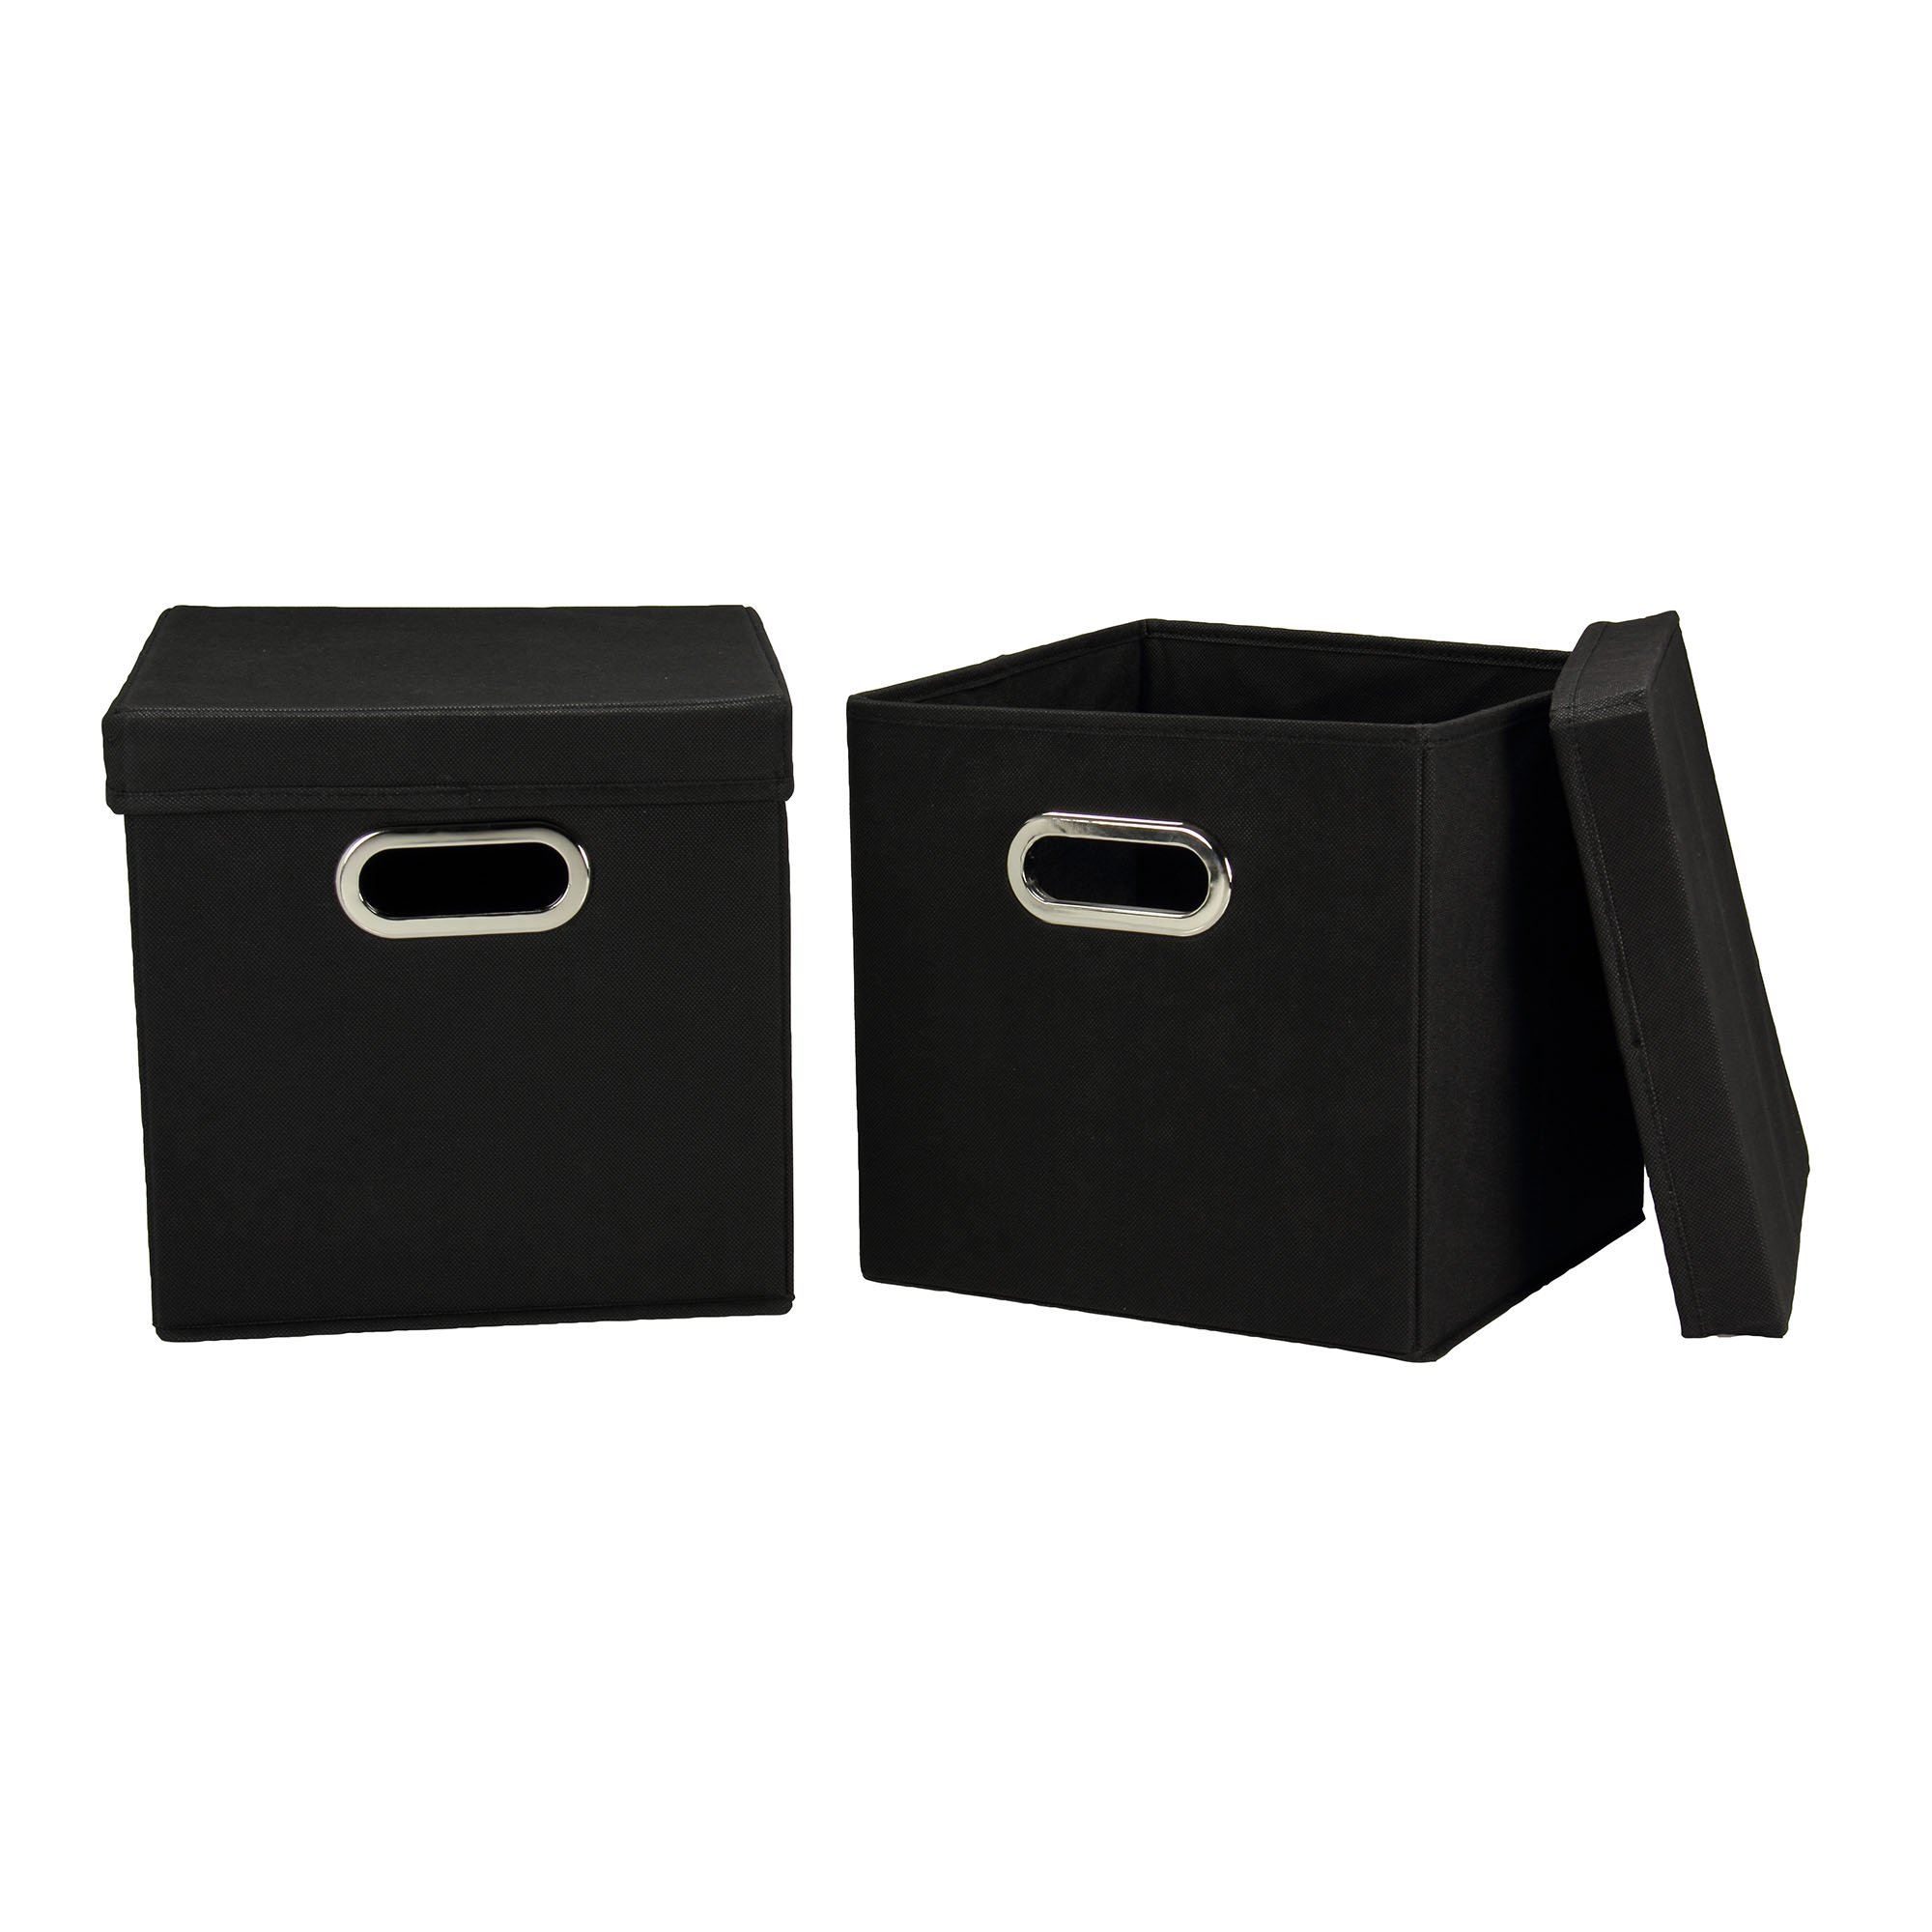 Household Essentials 34-1 Decorative Storage Cube Set with Removable Lids | Black | 2-Pack by Household Essentials